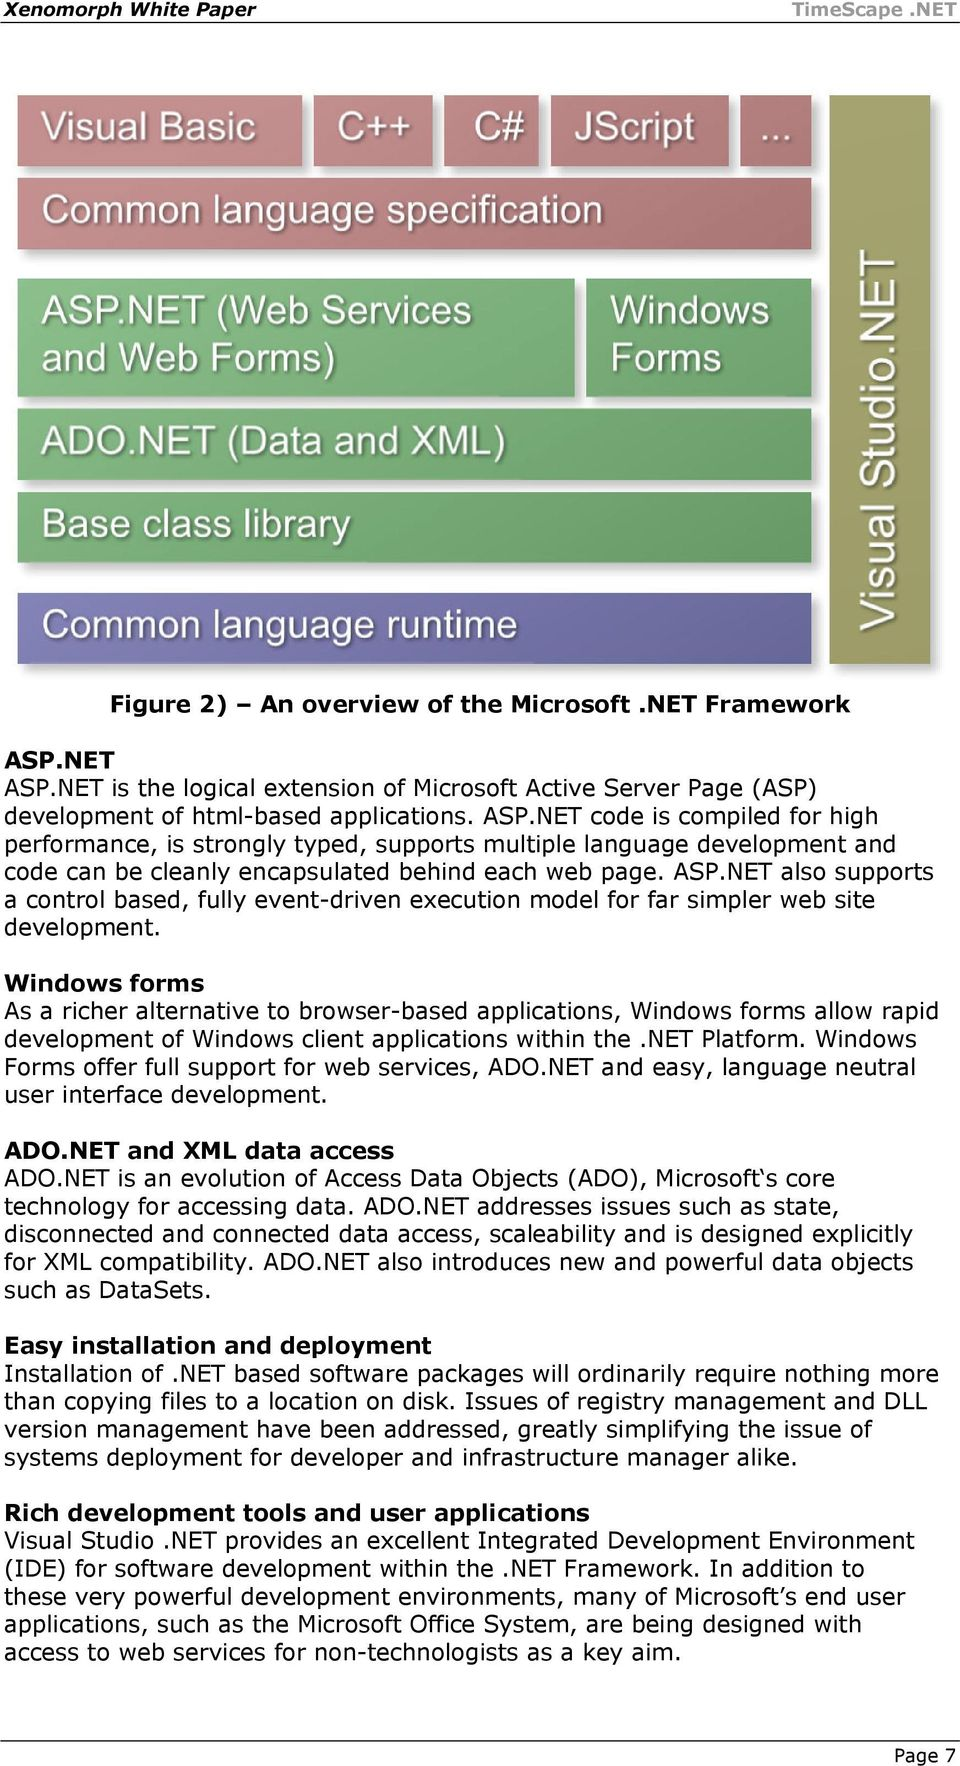 ASP.NET also supports a control based, fully event-driven execution model for far simpler web site development.